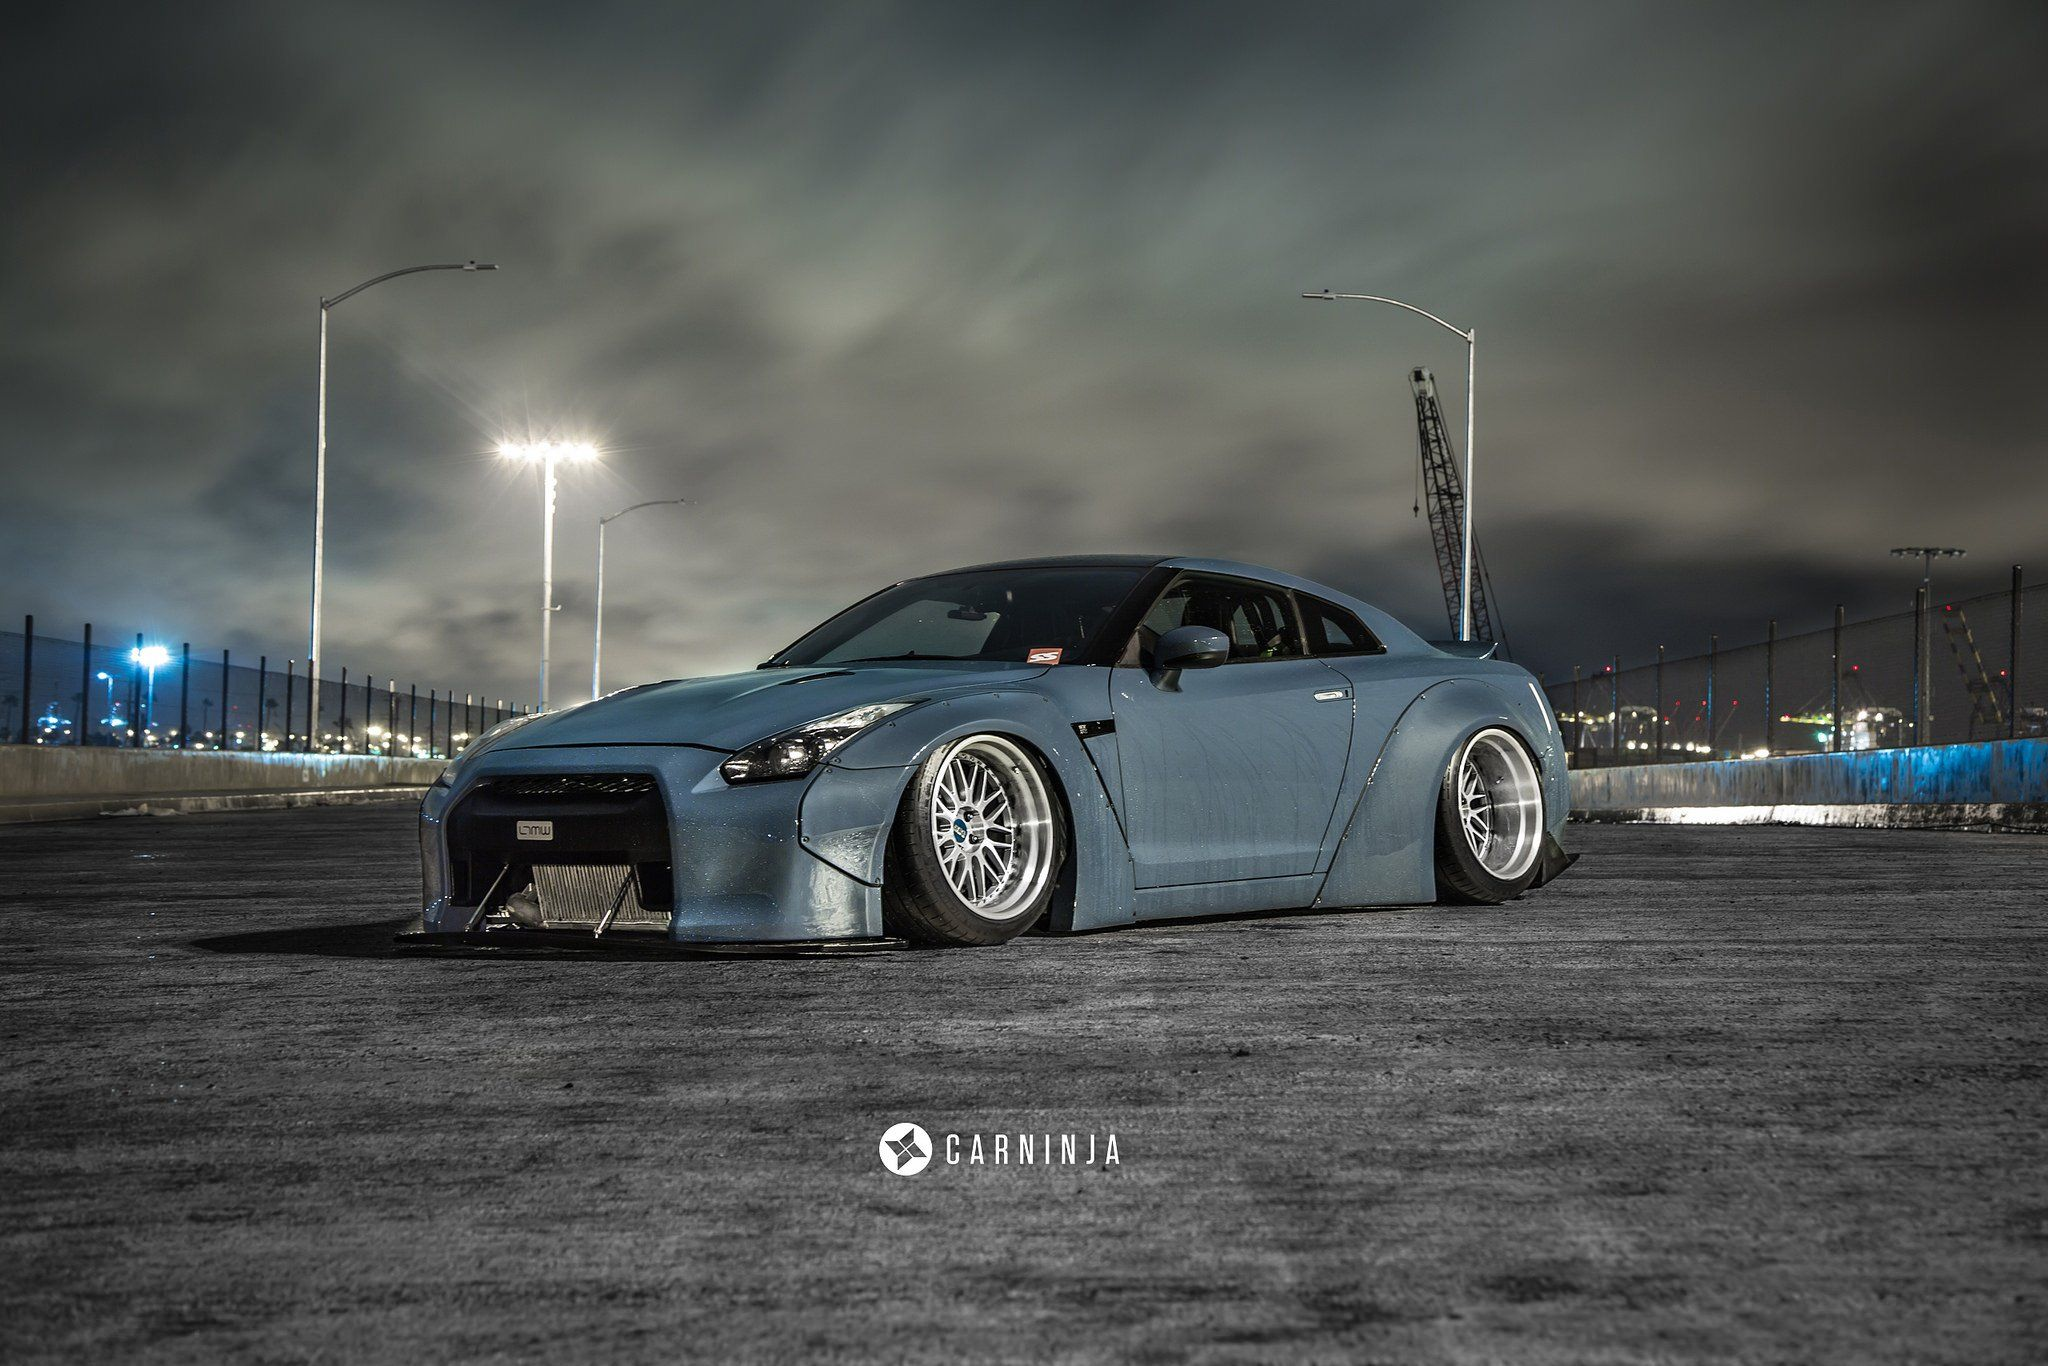 Nissan Gt R Body Kit Wallpapers Top Free Nissan Gt R Body Kit Backgrounds Wallpaperaccess